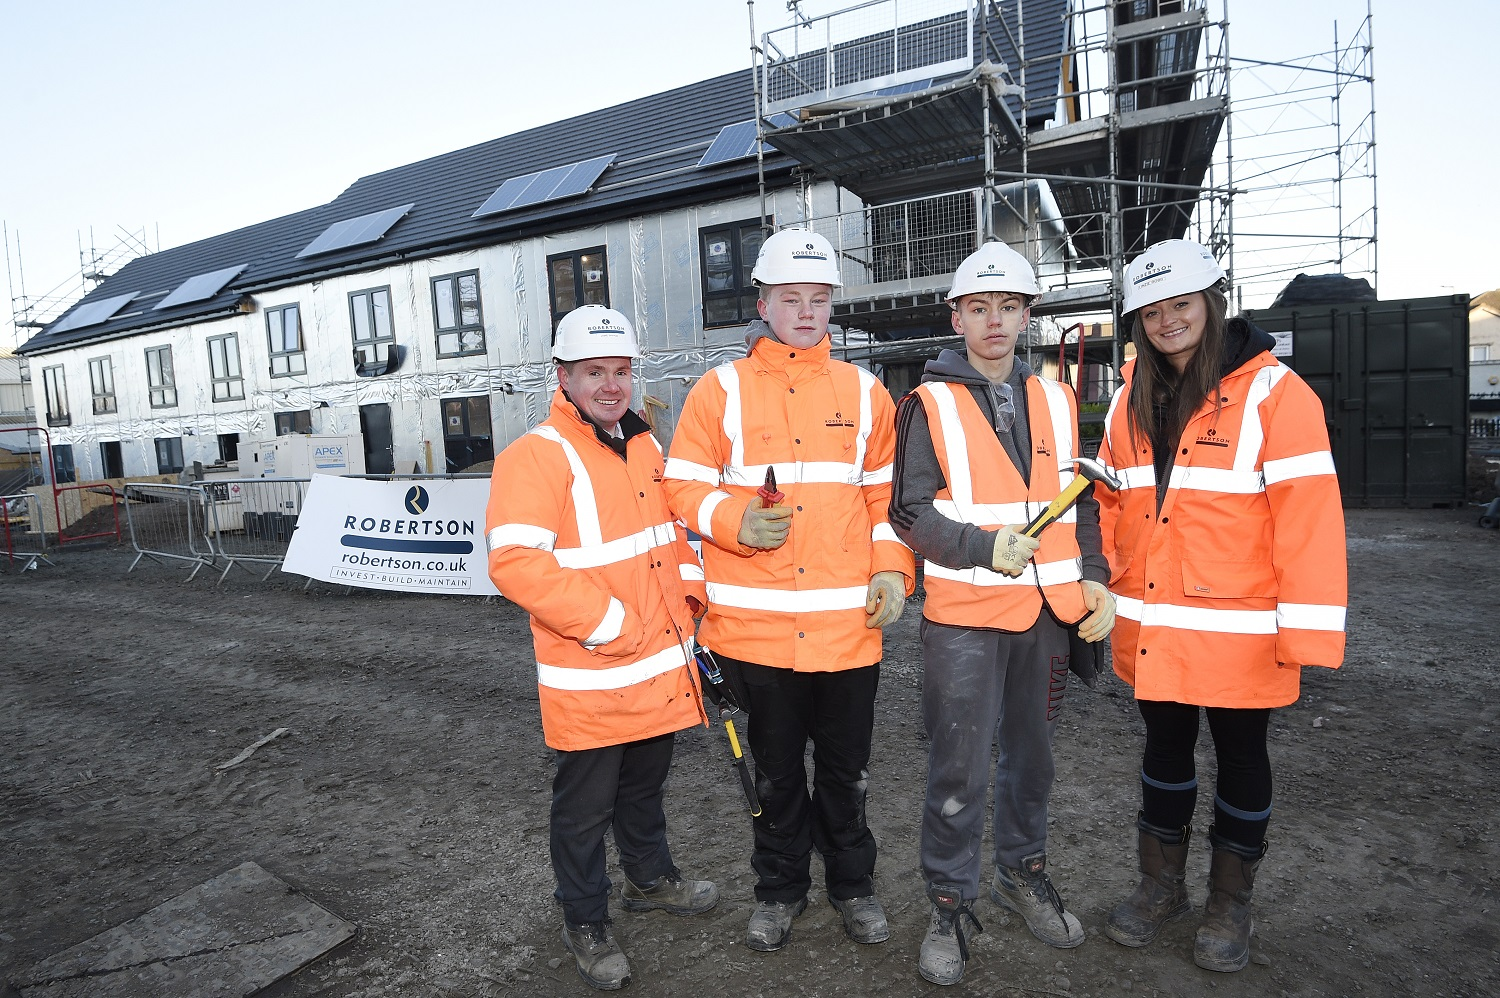 Robertson offers Edinburgh students a taste of the construction industry